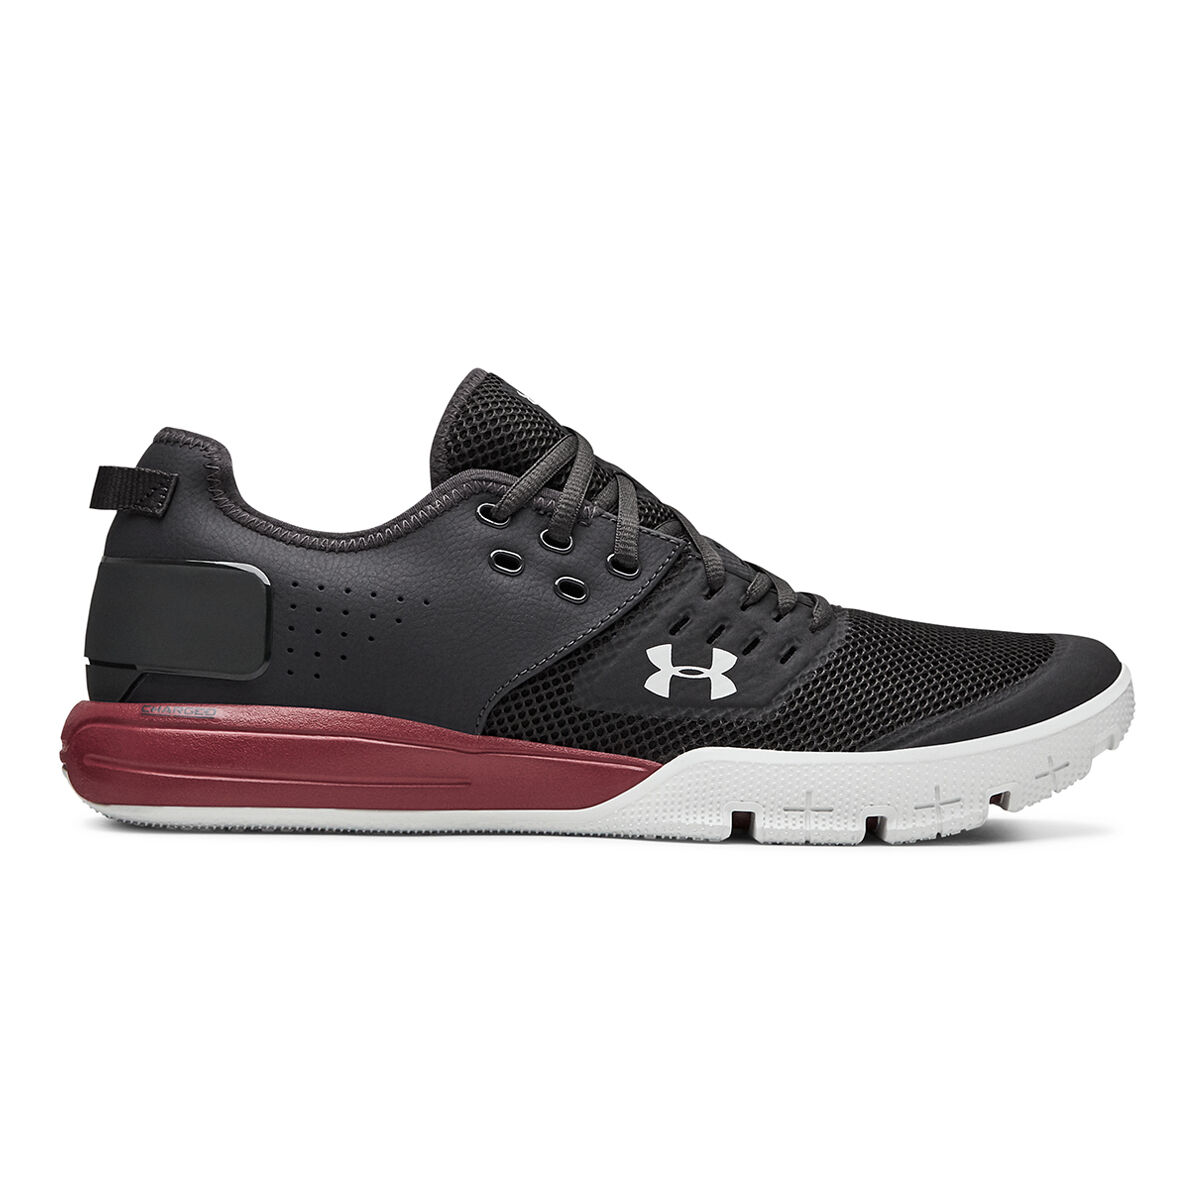 Under Armour Charged Ultimate 3.0 Mens